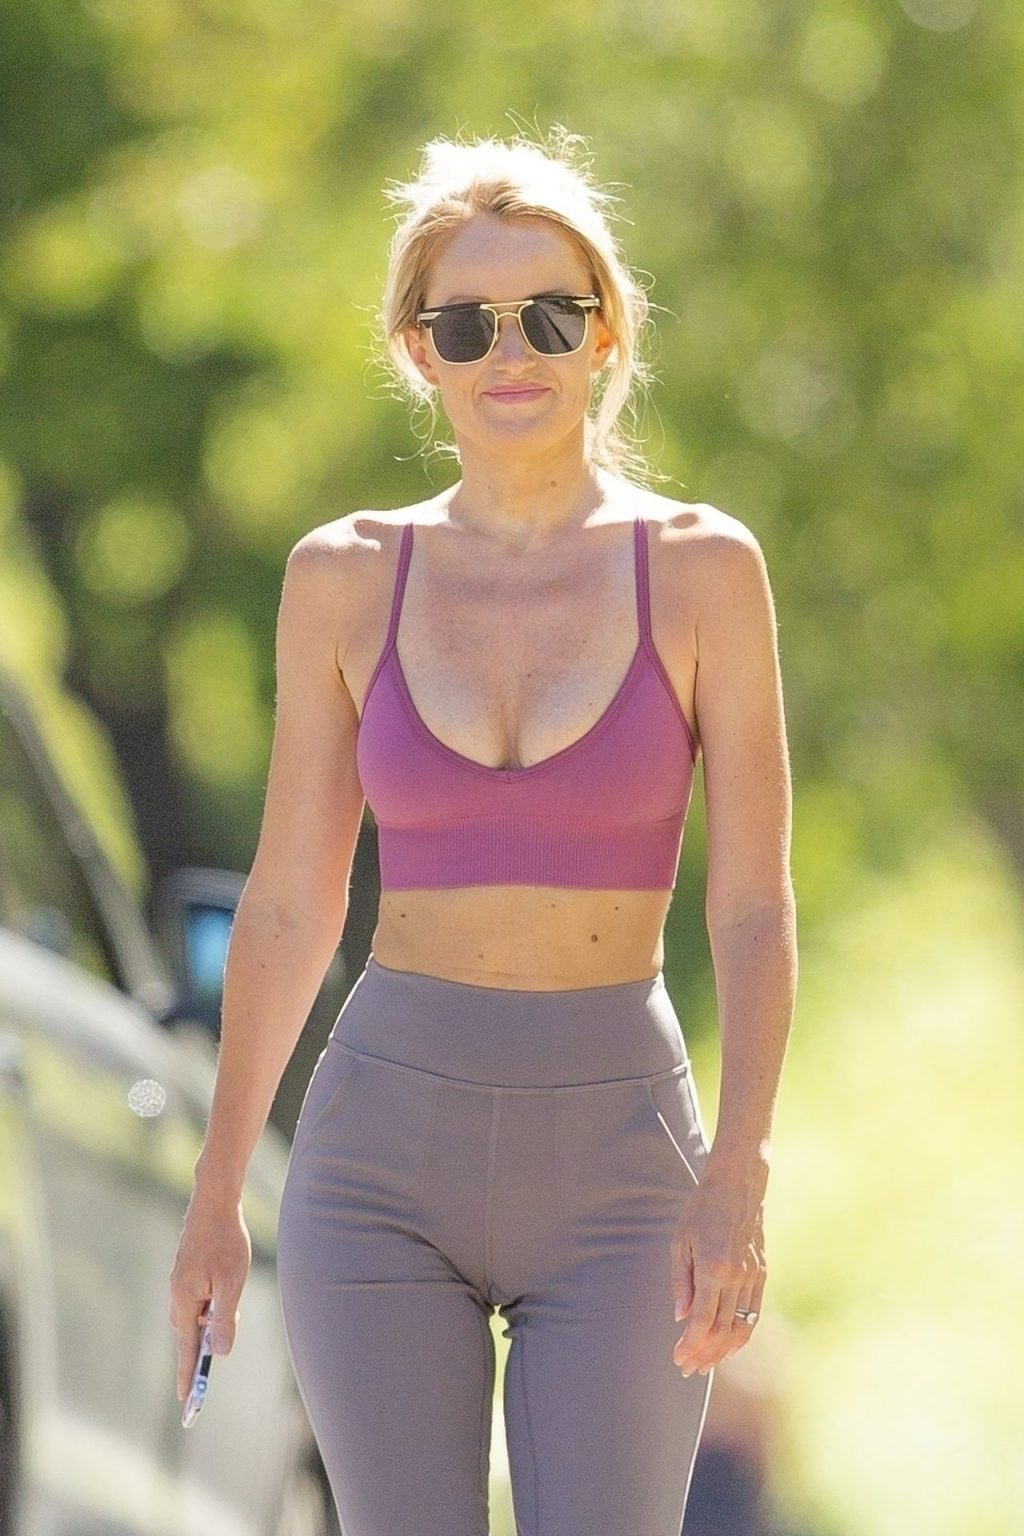 Hayley Roberts Hasselhoff Displays Pert Derriere While Wearing a Sports Bra (44 Photos)